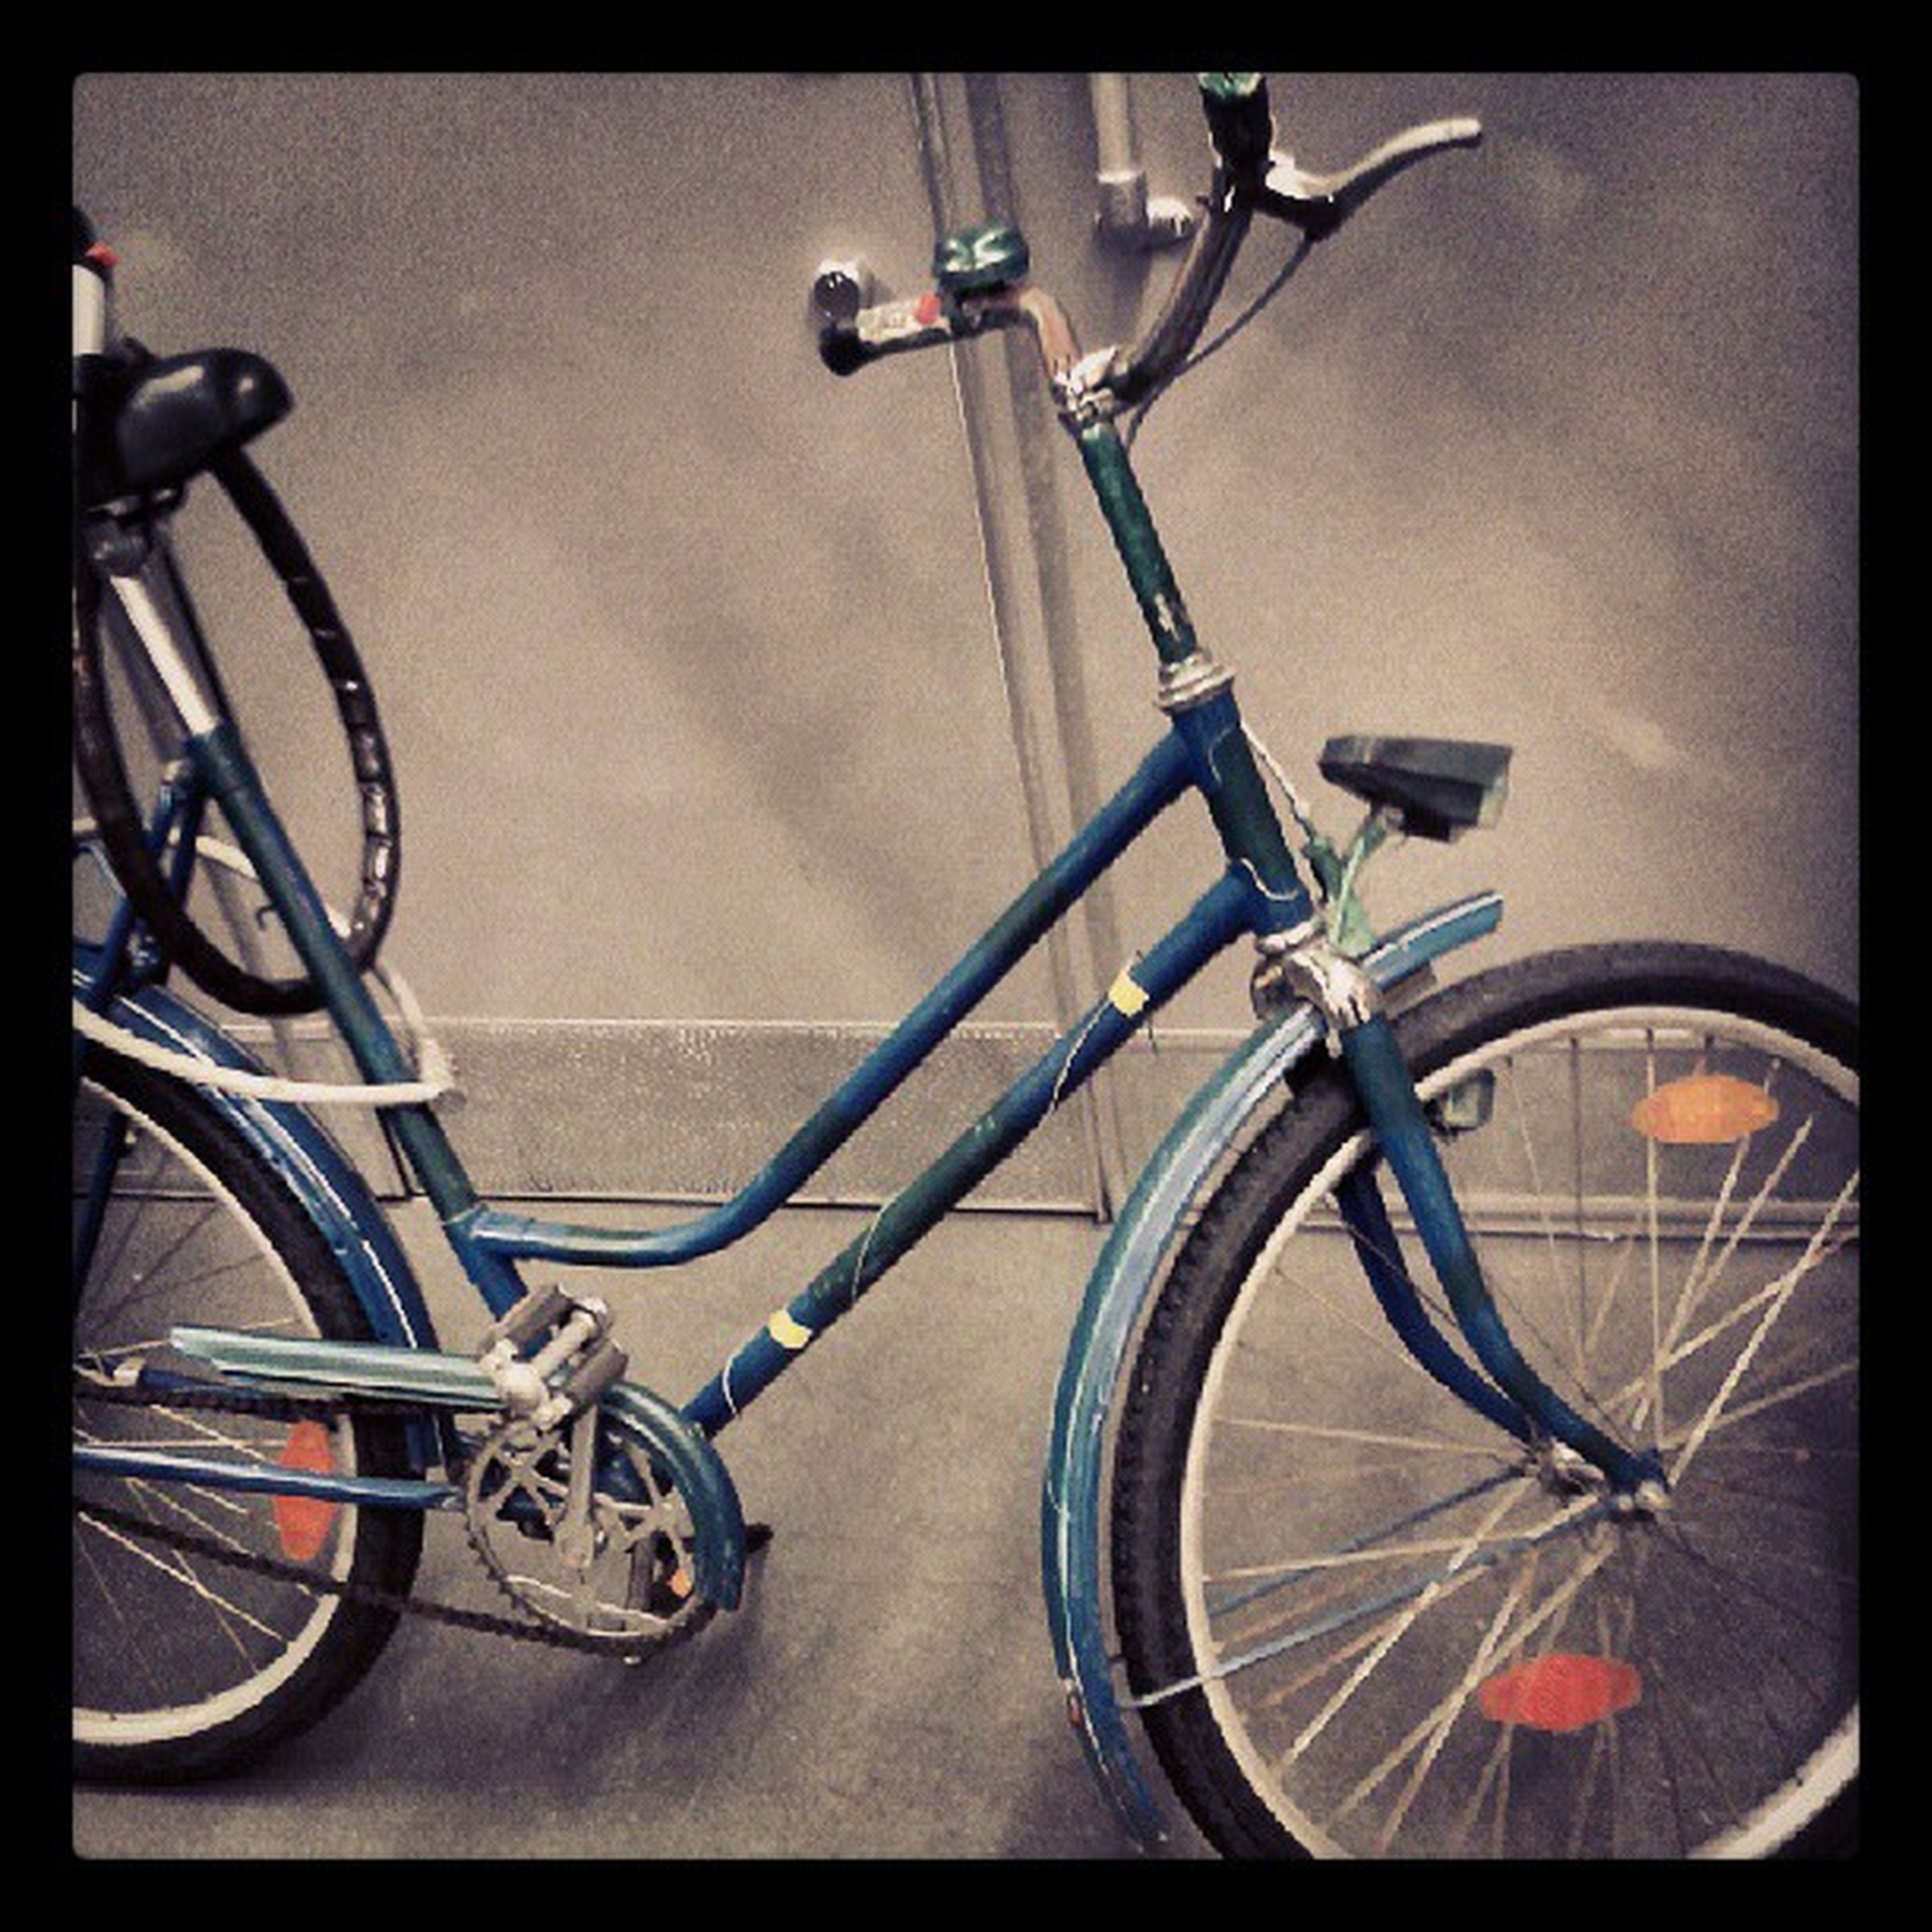 bicycle, transportation, mode of transport, land vehicle, stationary, parked, parking, transfer print, auto post production filter, wheel, travel, indoors, cycle, no people, leaning, wall - building feature, parking lot, street, absence, day